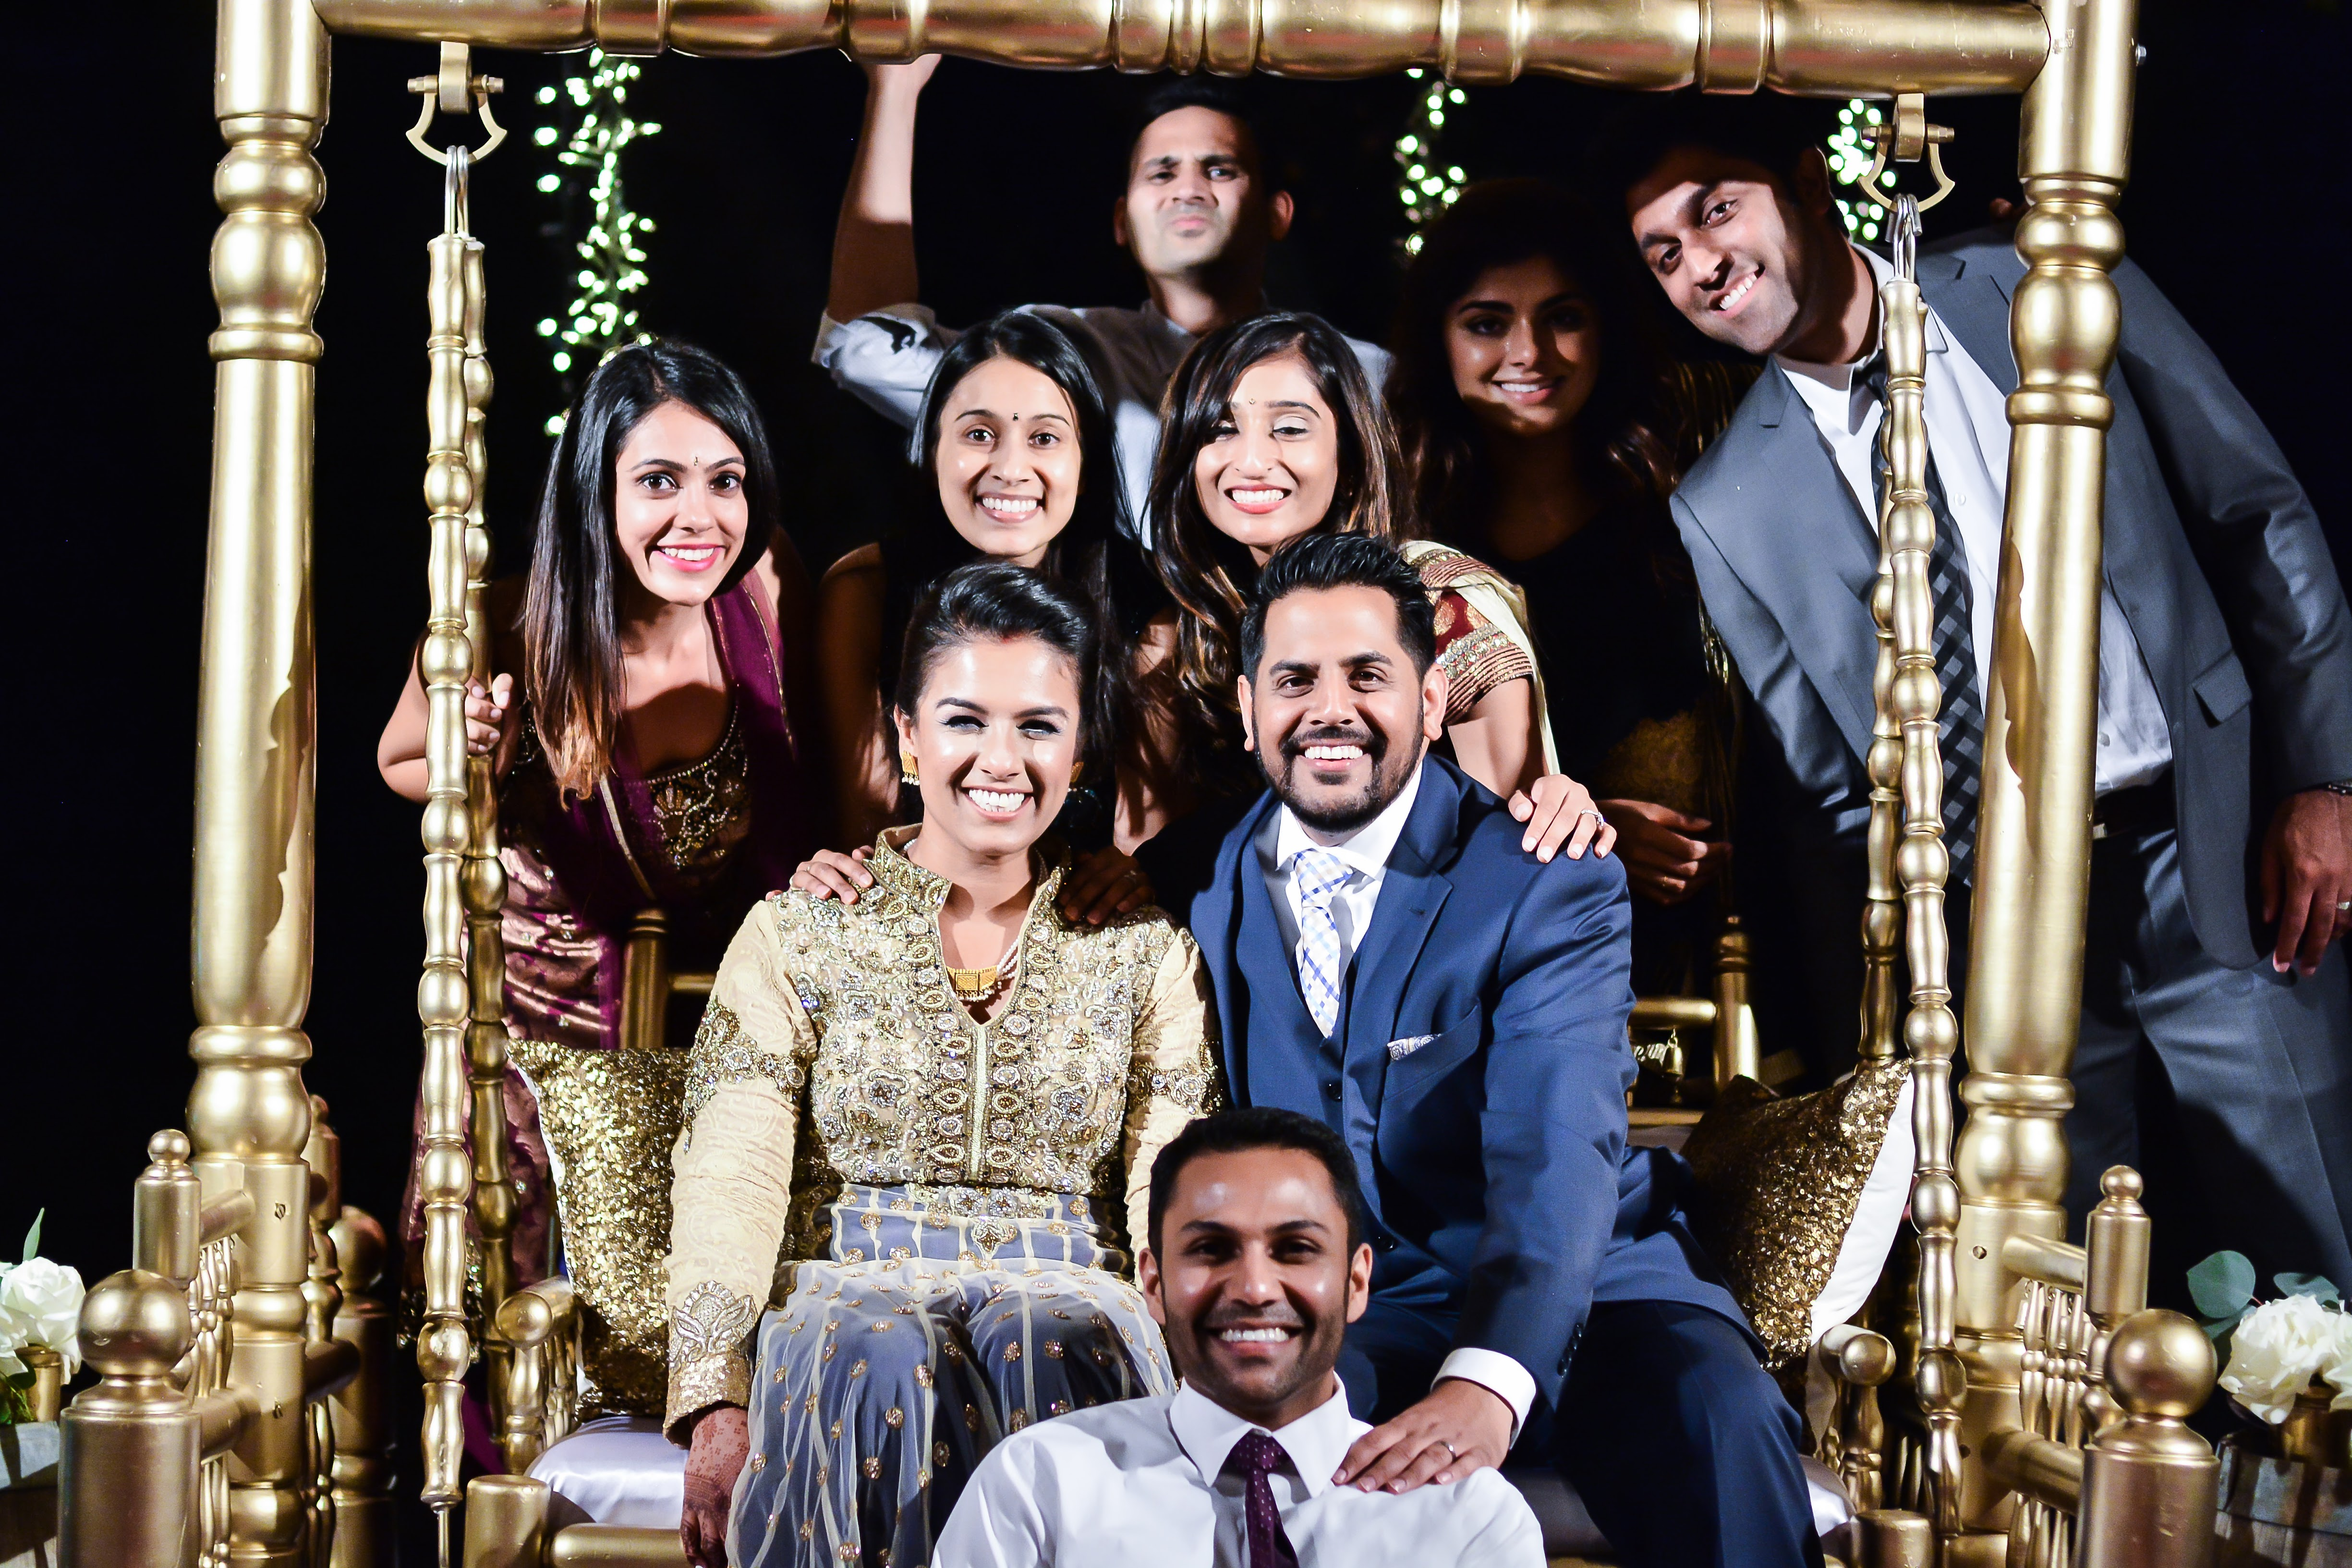 Bride And Grooms Friends Posing For A Photo At An Indian Wedding Reception